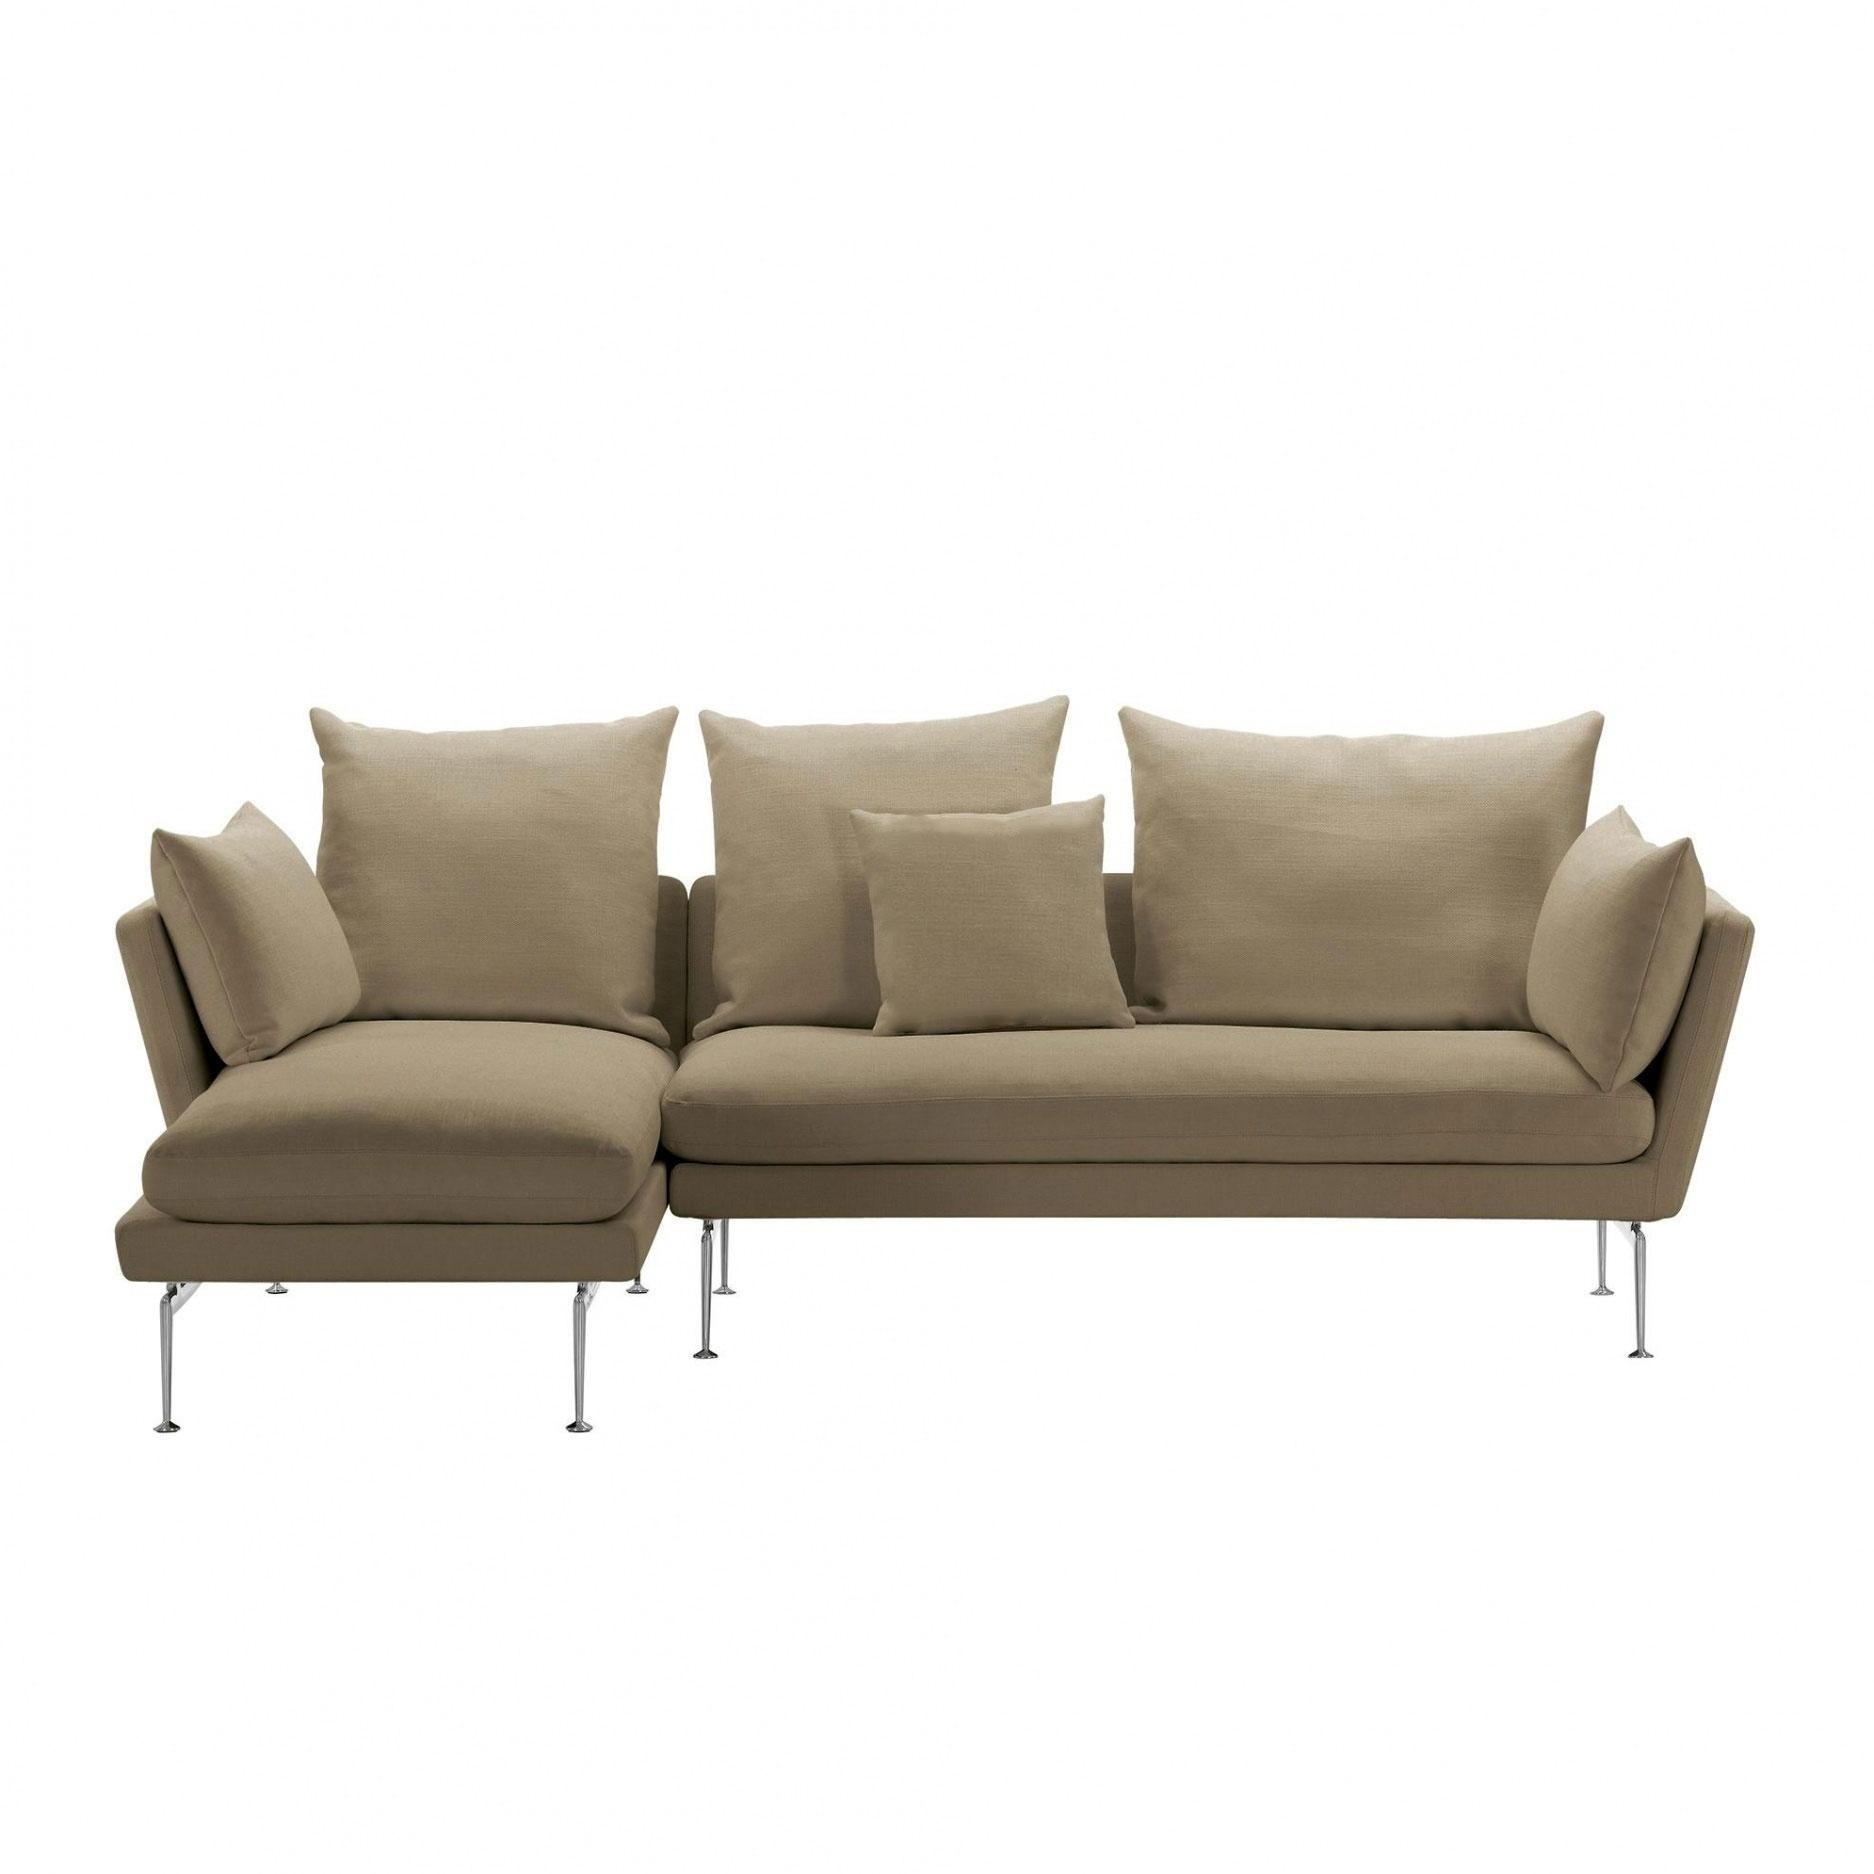 Chaise Vitra Suita Citterio Sofa With Chaise Longue